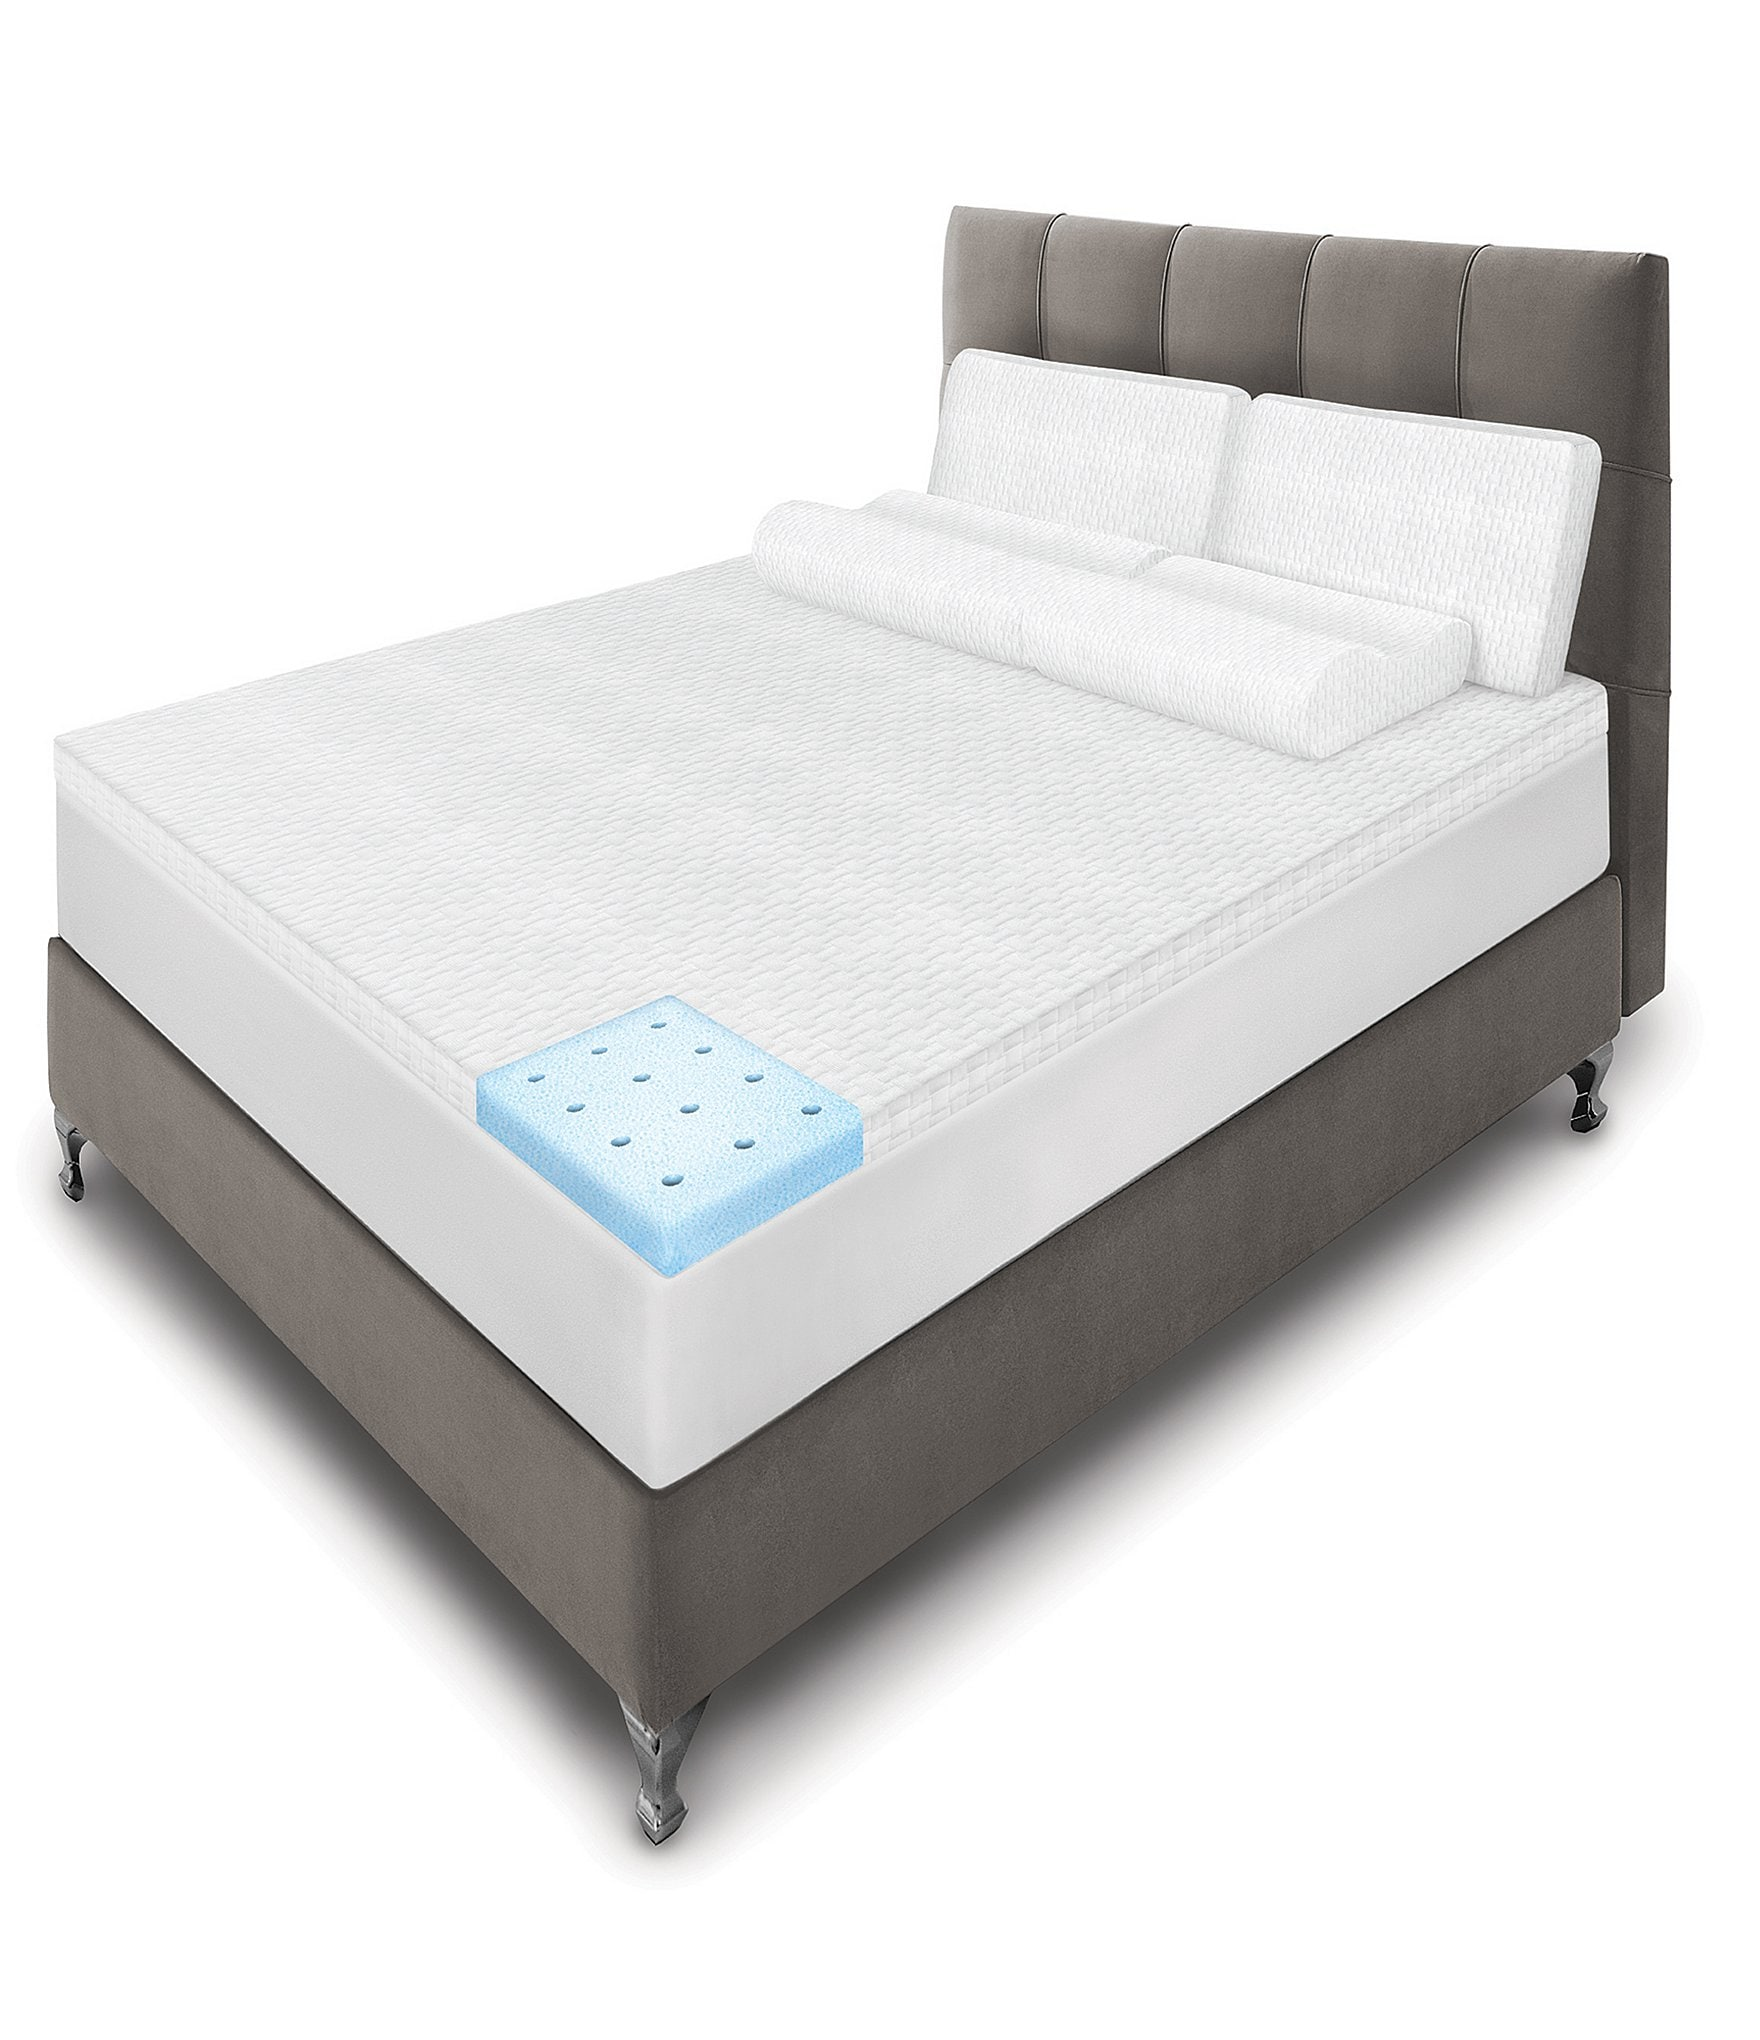 p blue vera wang king corrugated cover bedding s duvet mattress ebay texture collection